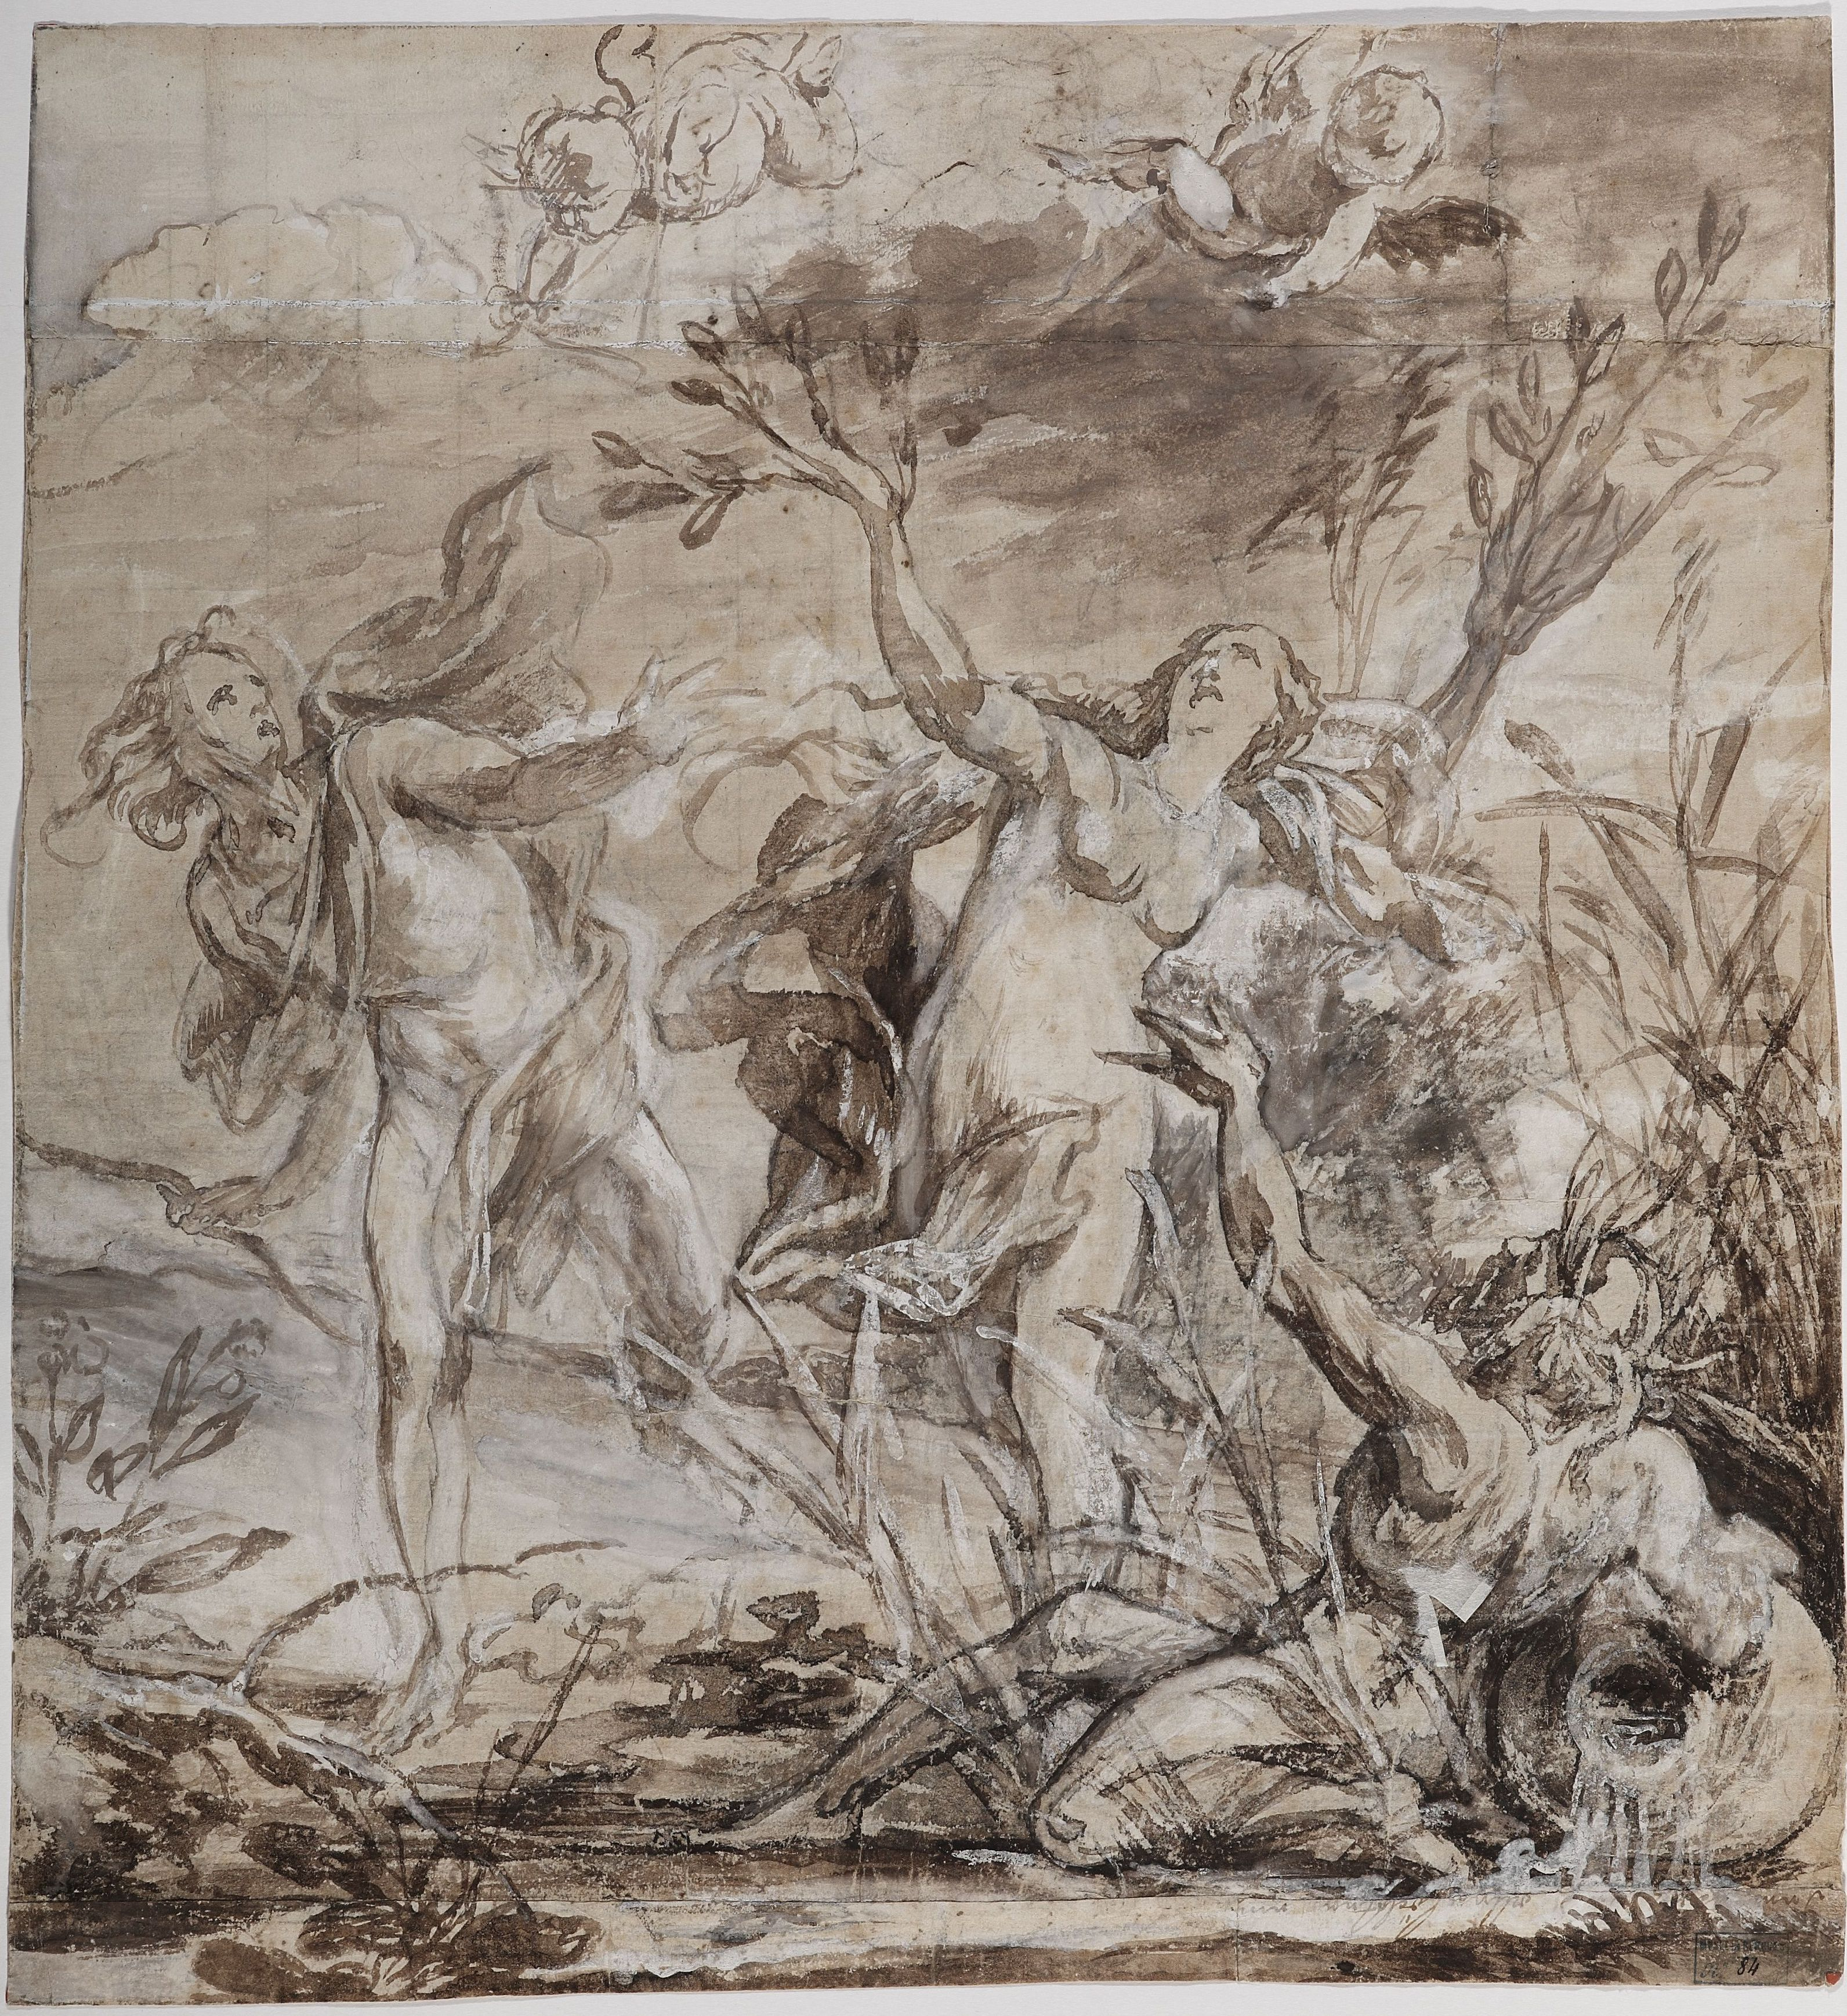 Jan Boeckhorst (1604-1668), Apollo and Daphne pen and brown ink, brown wash, heightened with opaque white, 37.4 x 34.6 cm Bergues, Musée du Mont-de-Piété, inv. no. 2011.0.209.84 © Musée du Mont-de-Piété - Bergues / Photo Studio Mallevaey